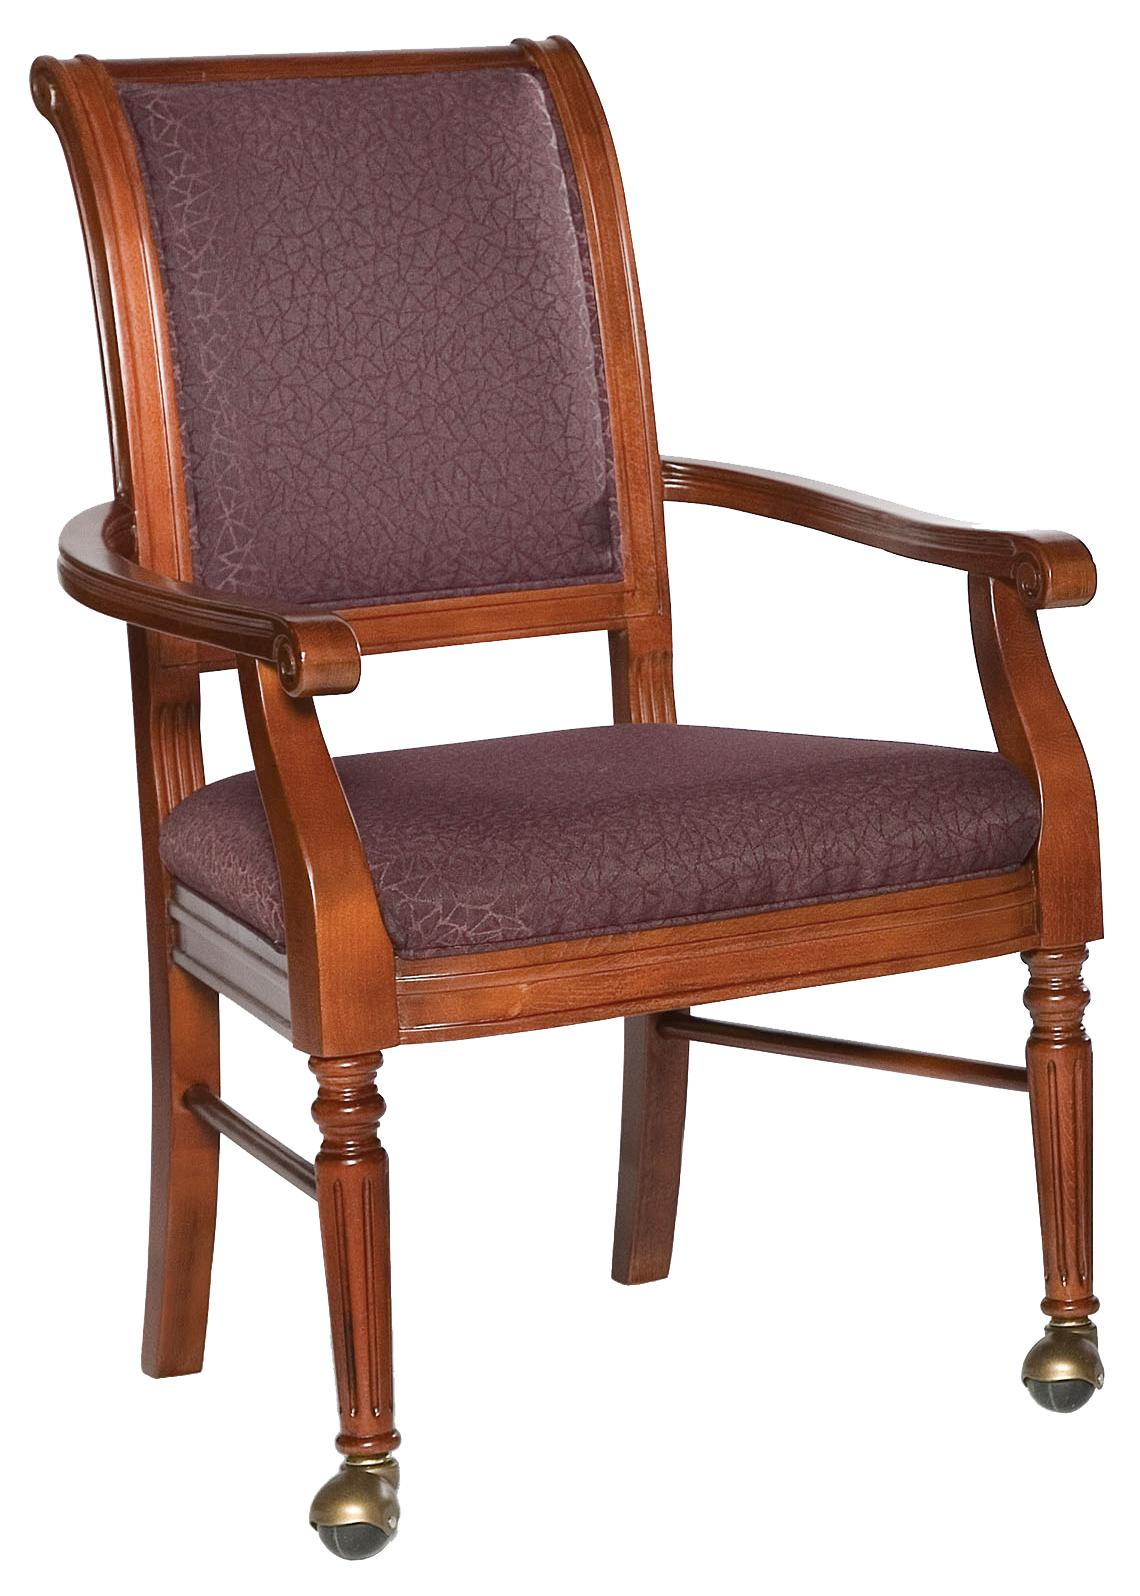 Fairfield Chairs Picture Frame Chair with Front Leg Casters - Item Number: 5434-A2